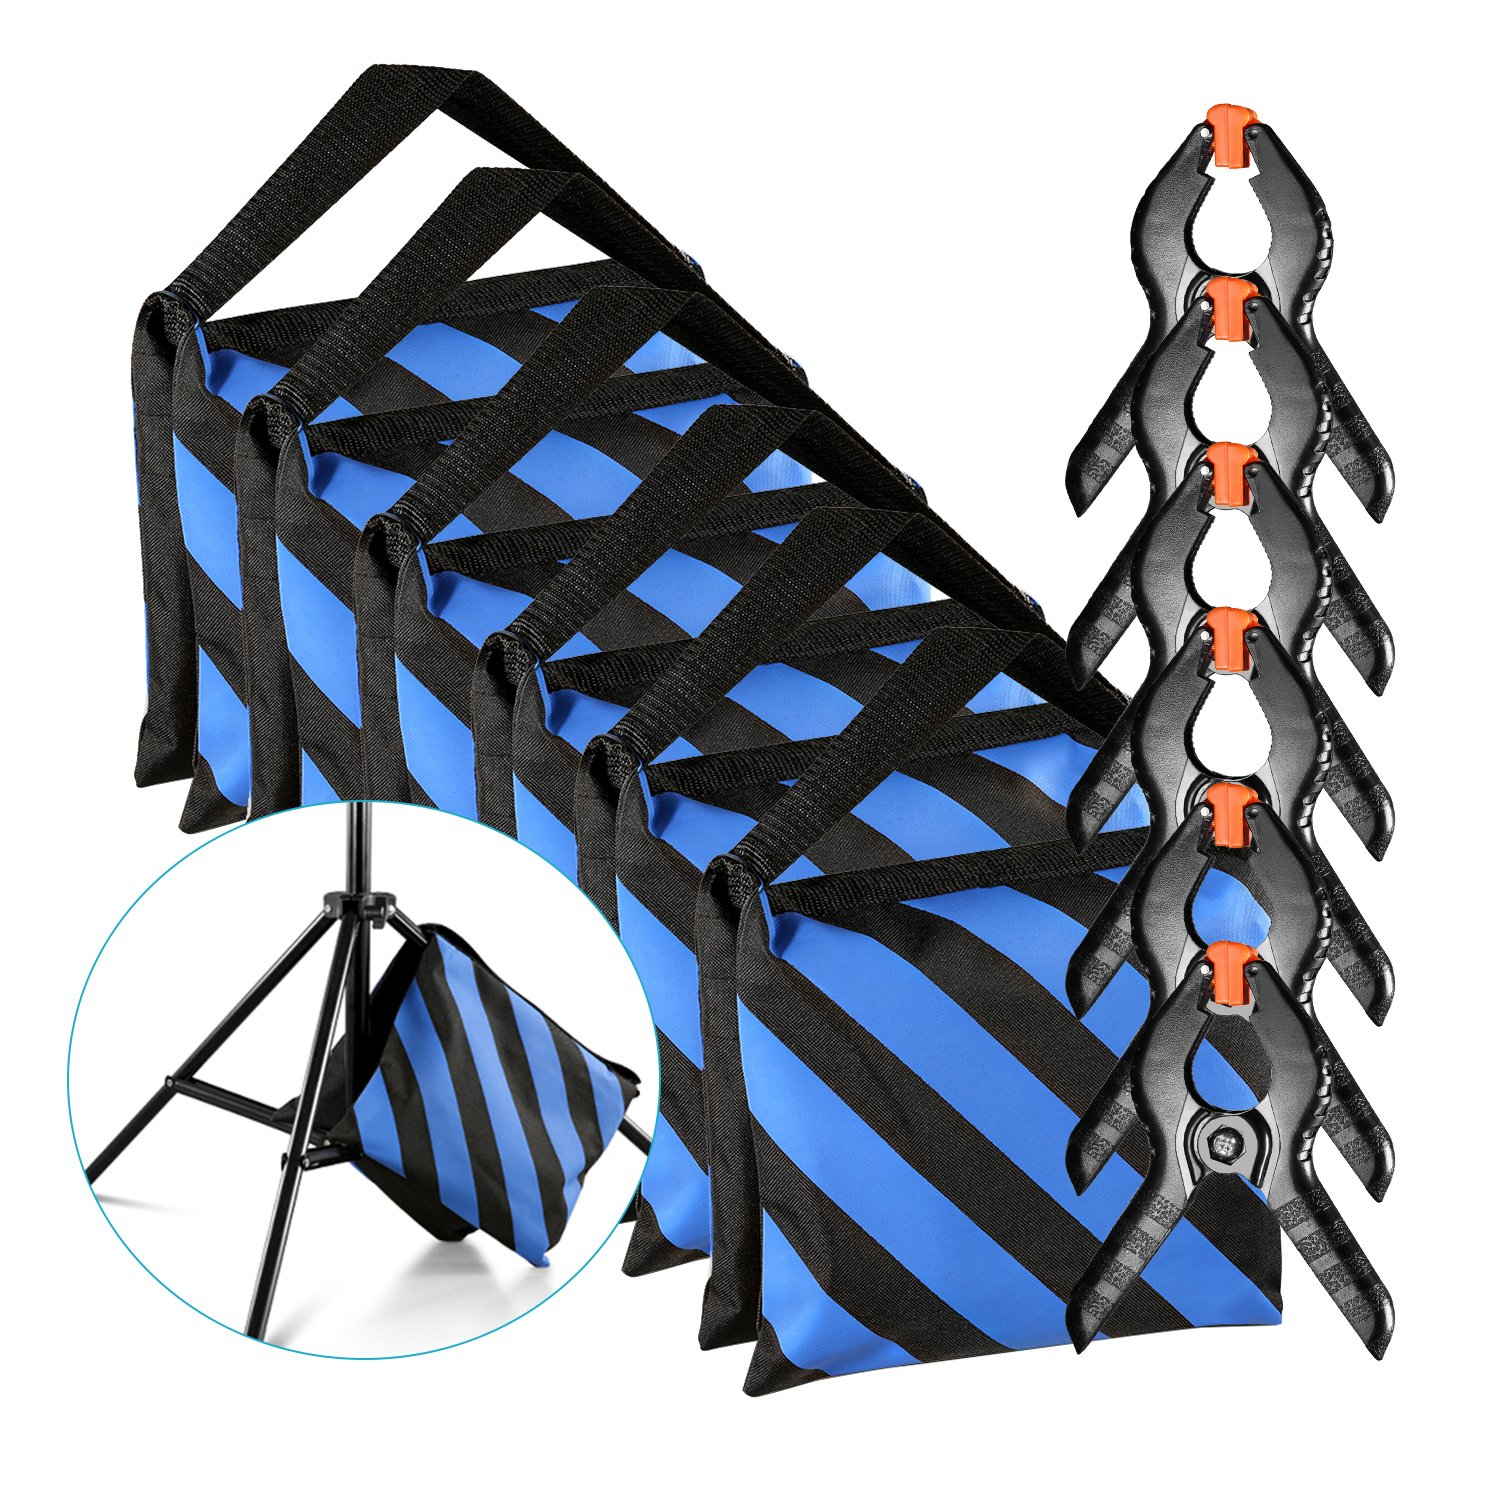 Neewer 6-Pack Heavy Duty Sandbag (Blue/Black) for Photo Studio Light Stands Boom Arms with 6-Pack Muslin Backdrop Spring Clamps Clips (Empty Sandbag) by Neewer